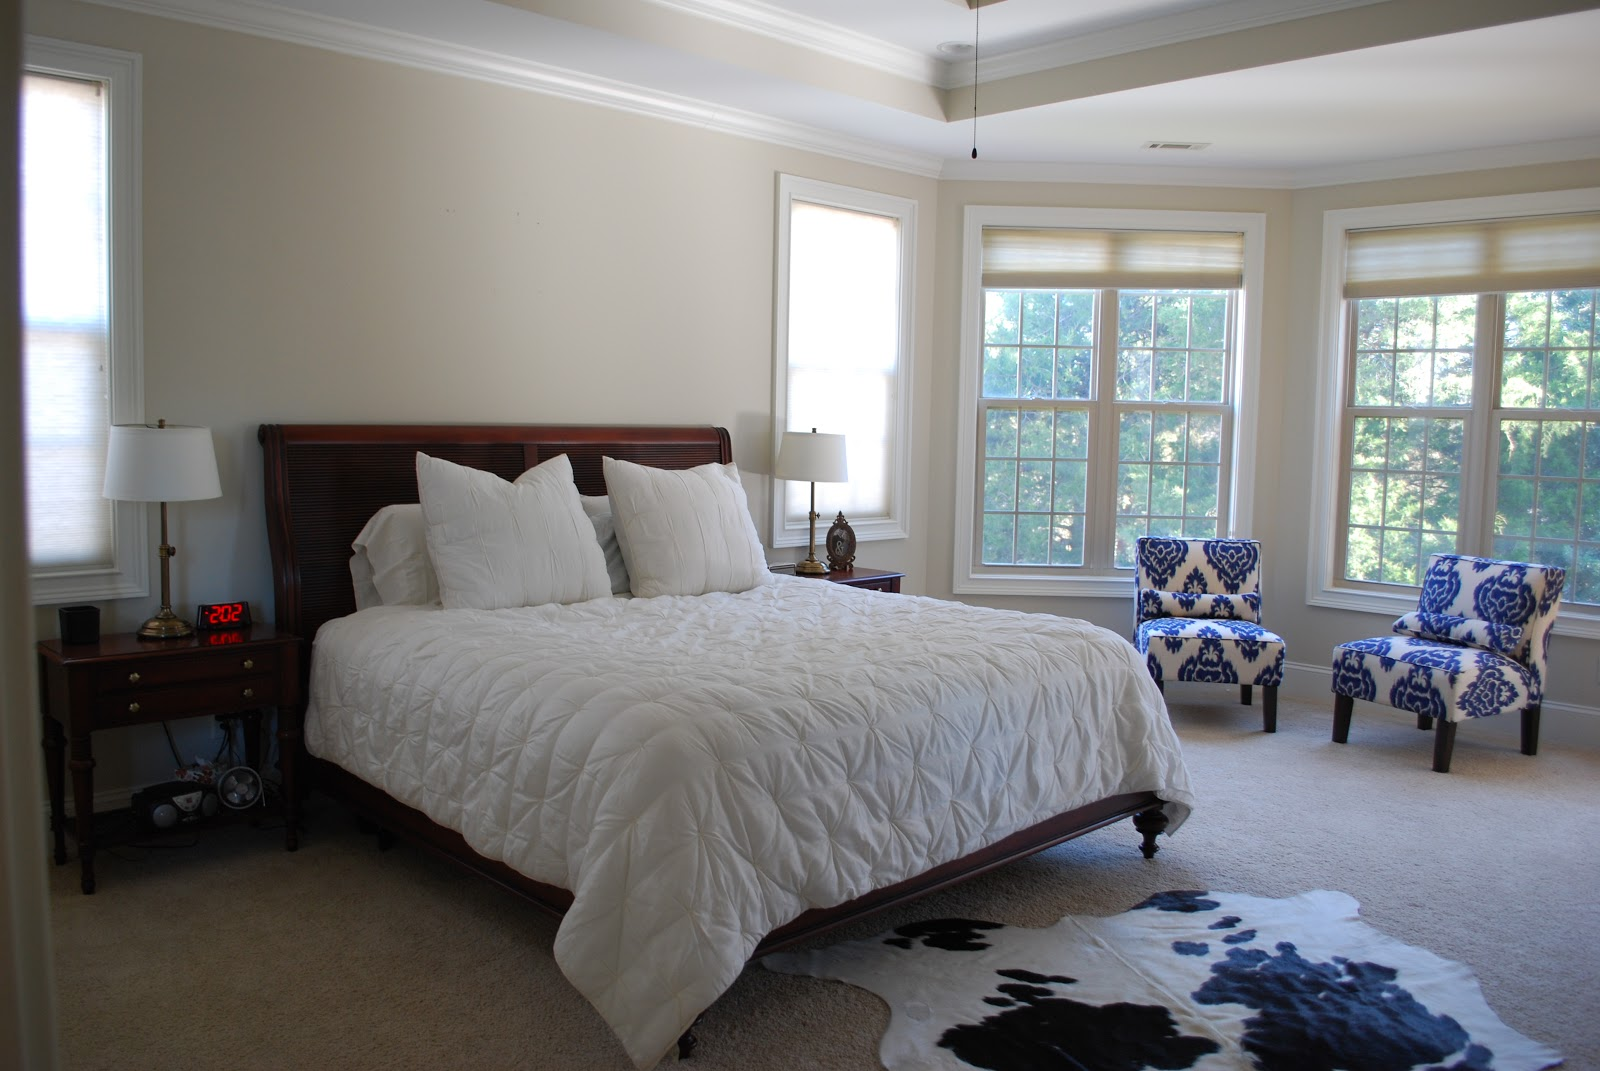 Before And After A Master Bedroom E Design Project